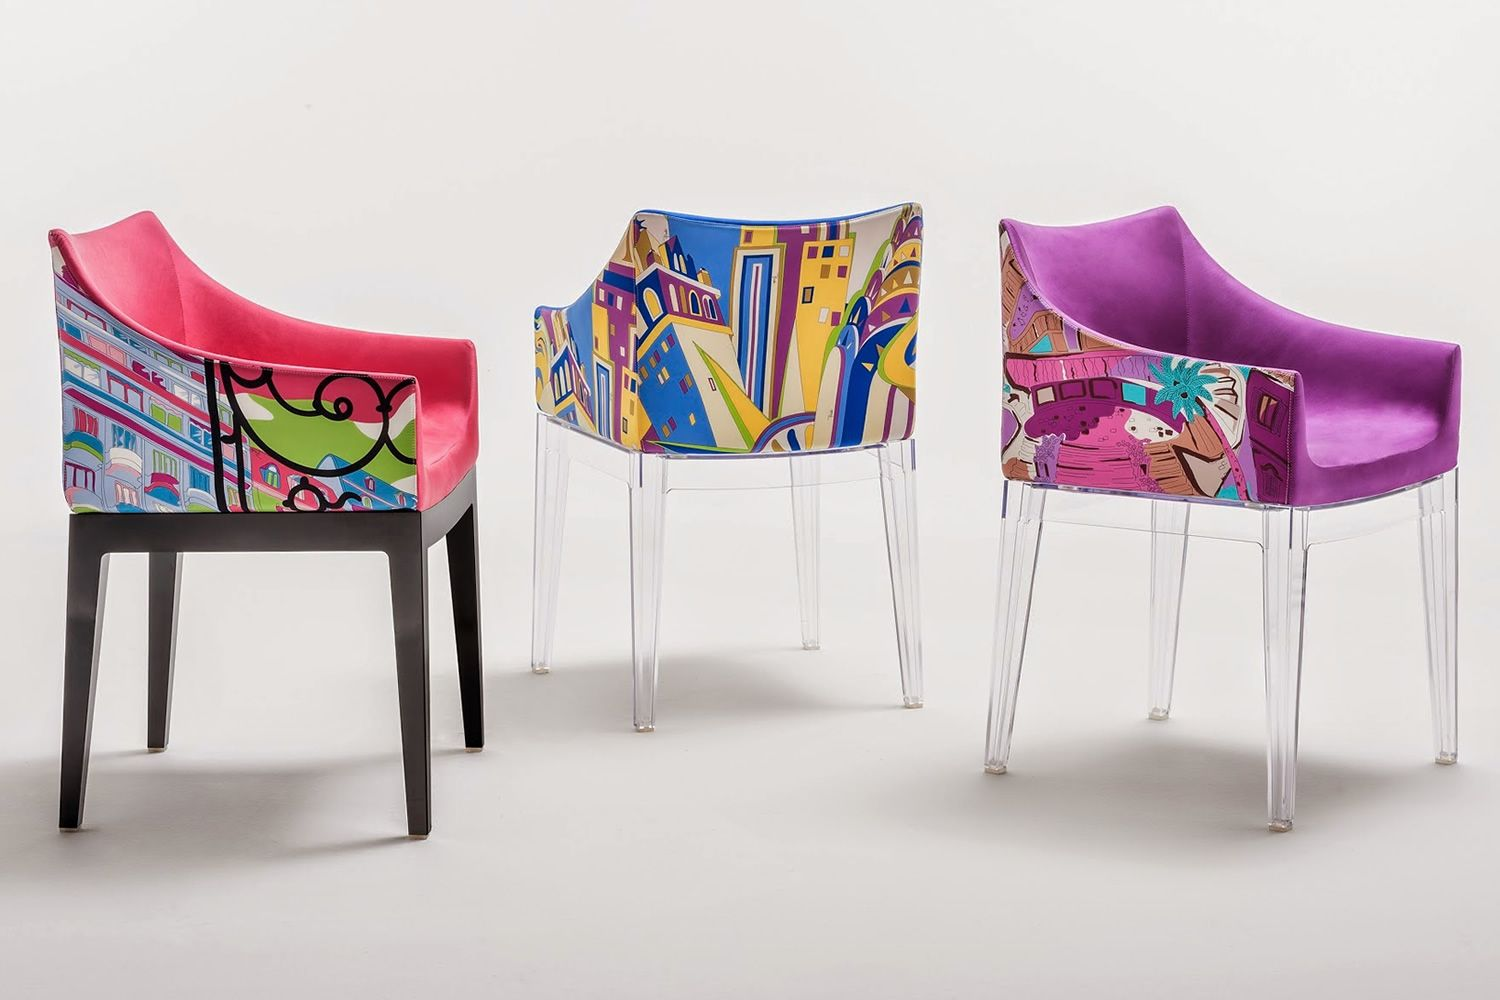 Madame pucci edition kartell design armchair world of emilio pucci edition - Kartell boutique paris ...